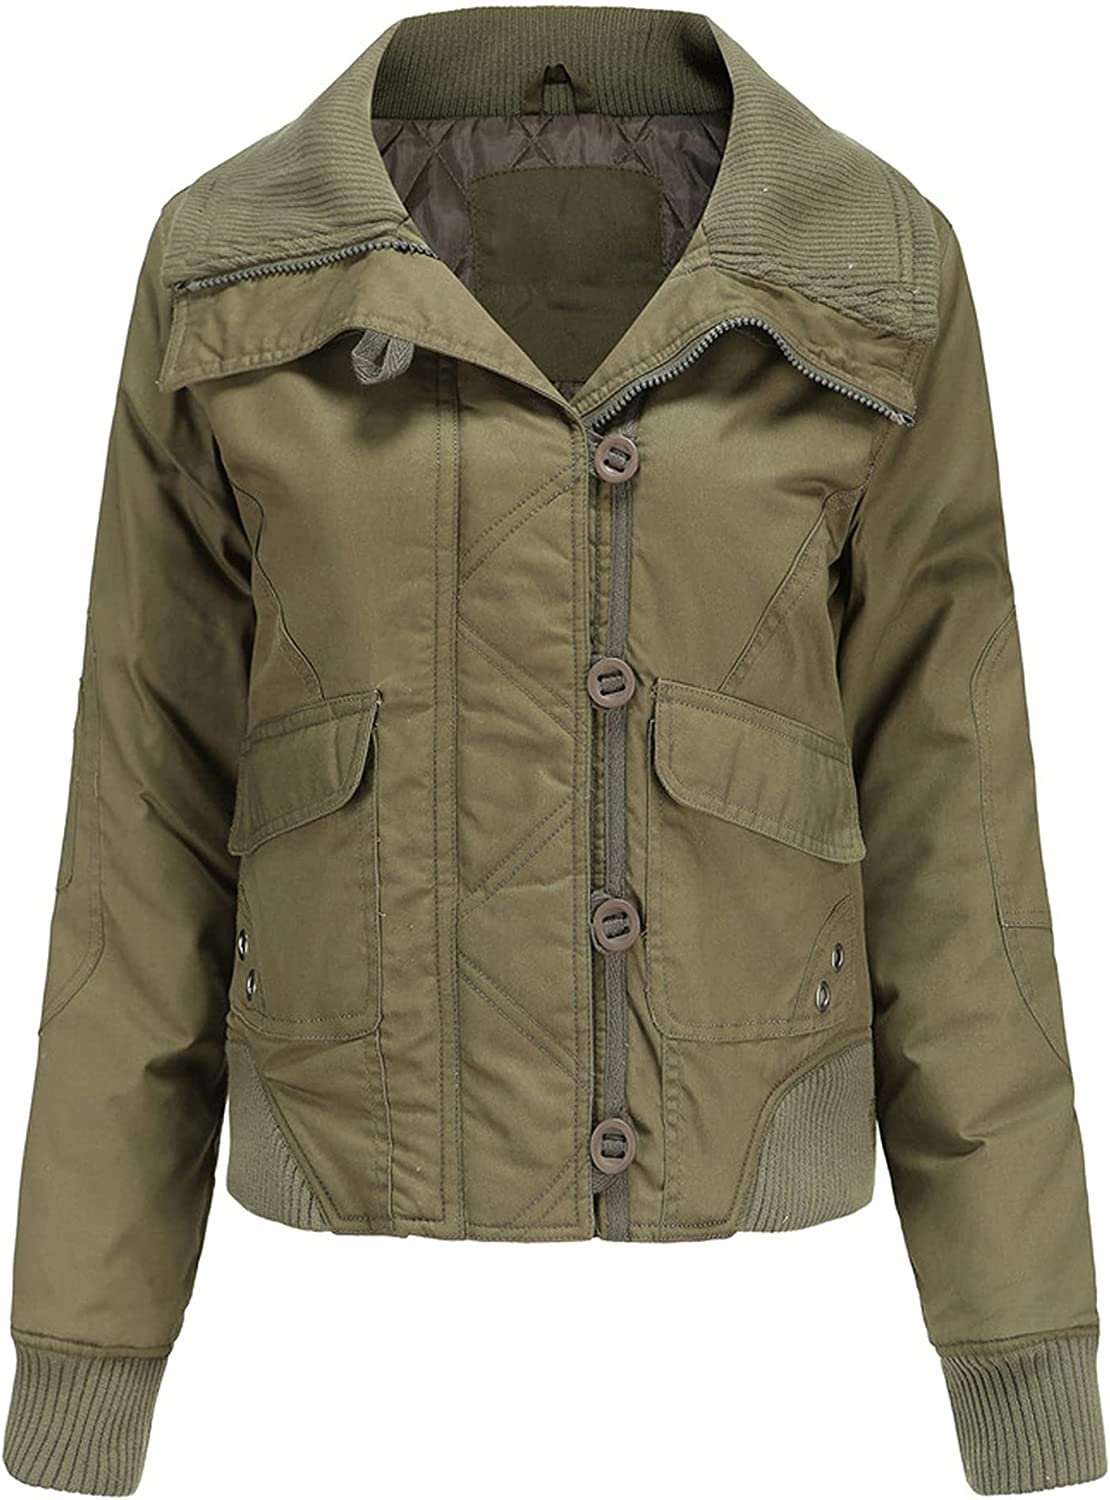 MEWOW Women's Fall Winter Warm Casual Quilted Coat Rib-Knit Lapel Bomber Jacket